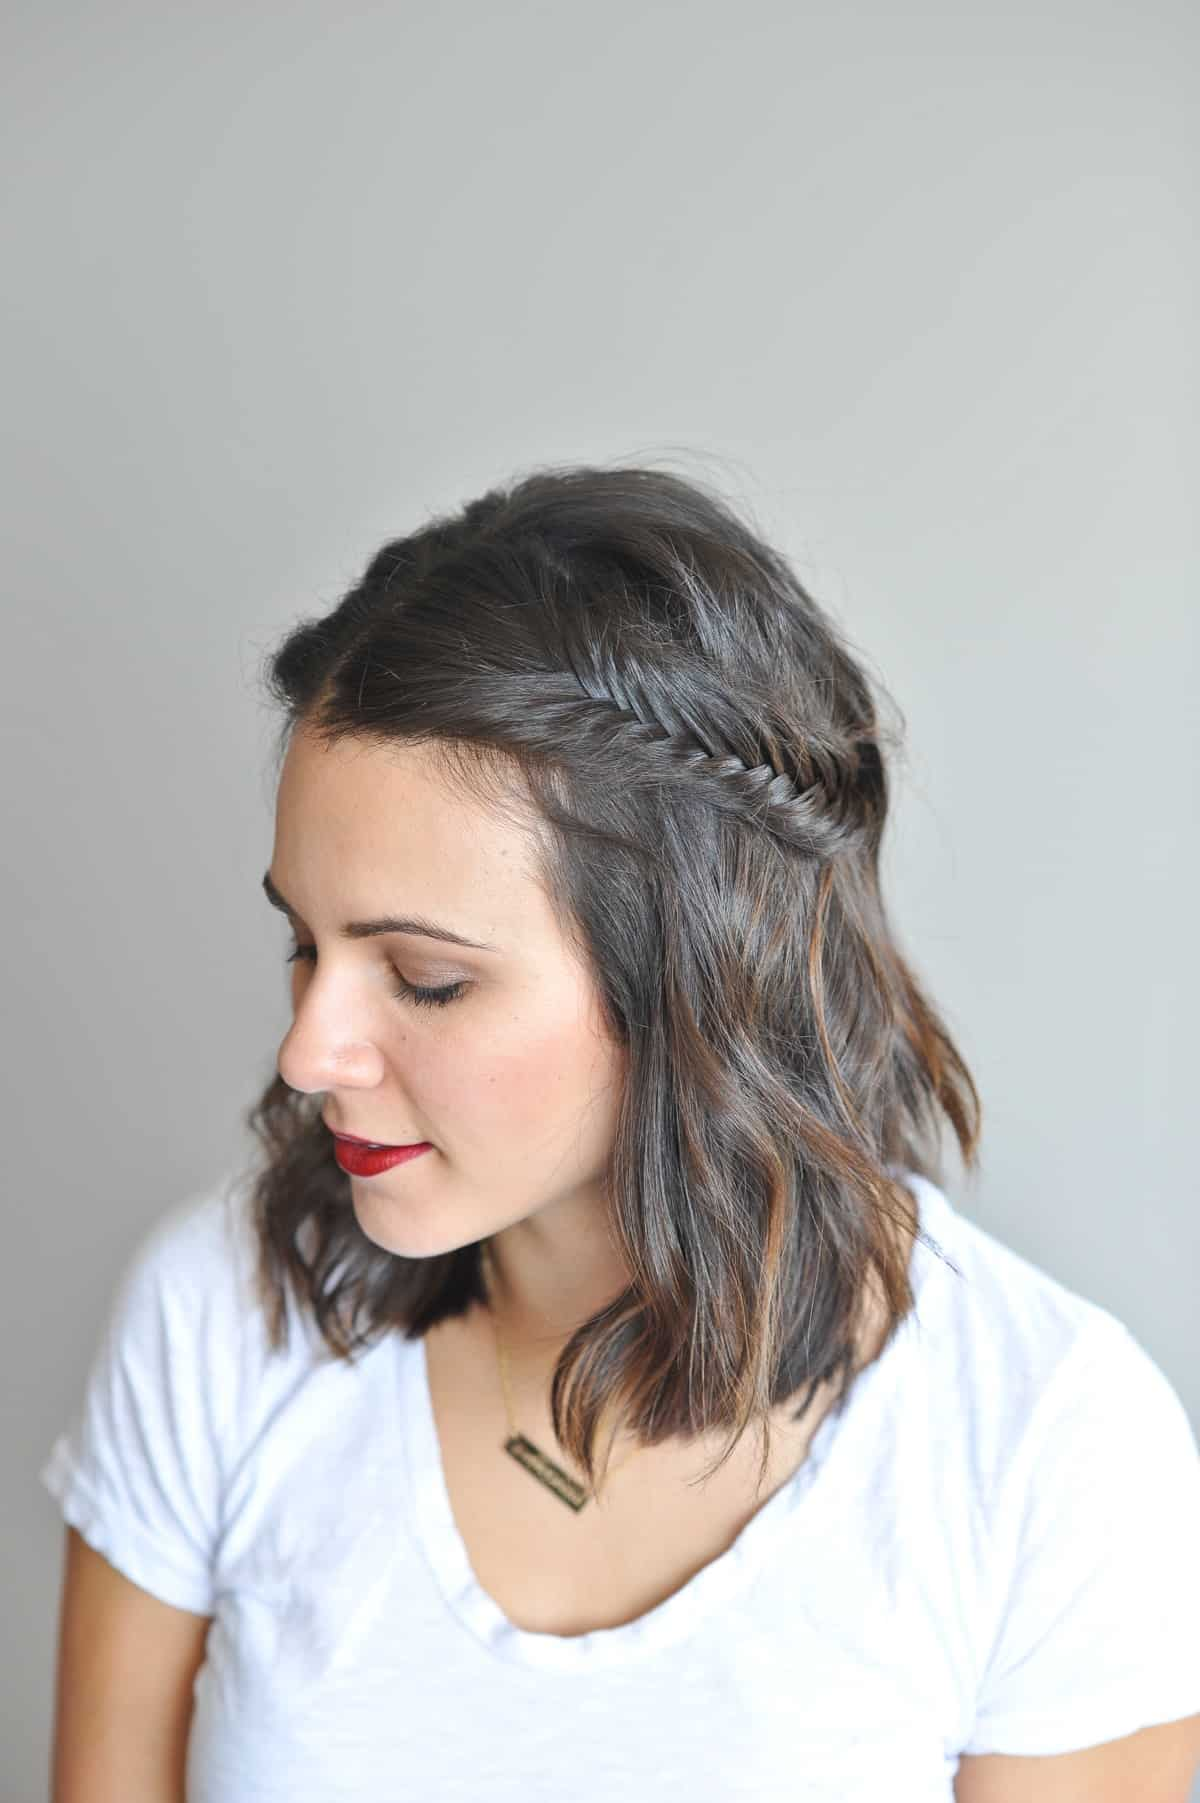 fishtail braid half up short hair via @mystylevita - Fishtail braid tutorial for short hair